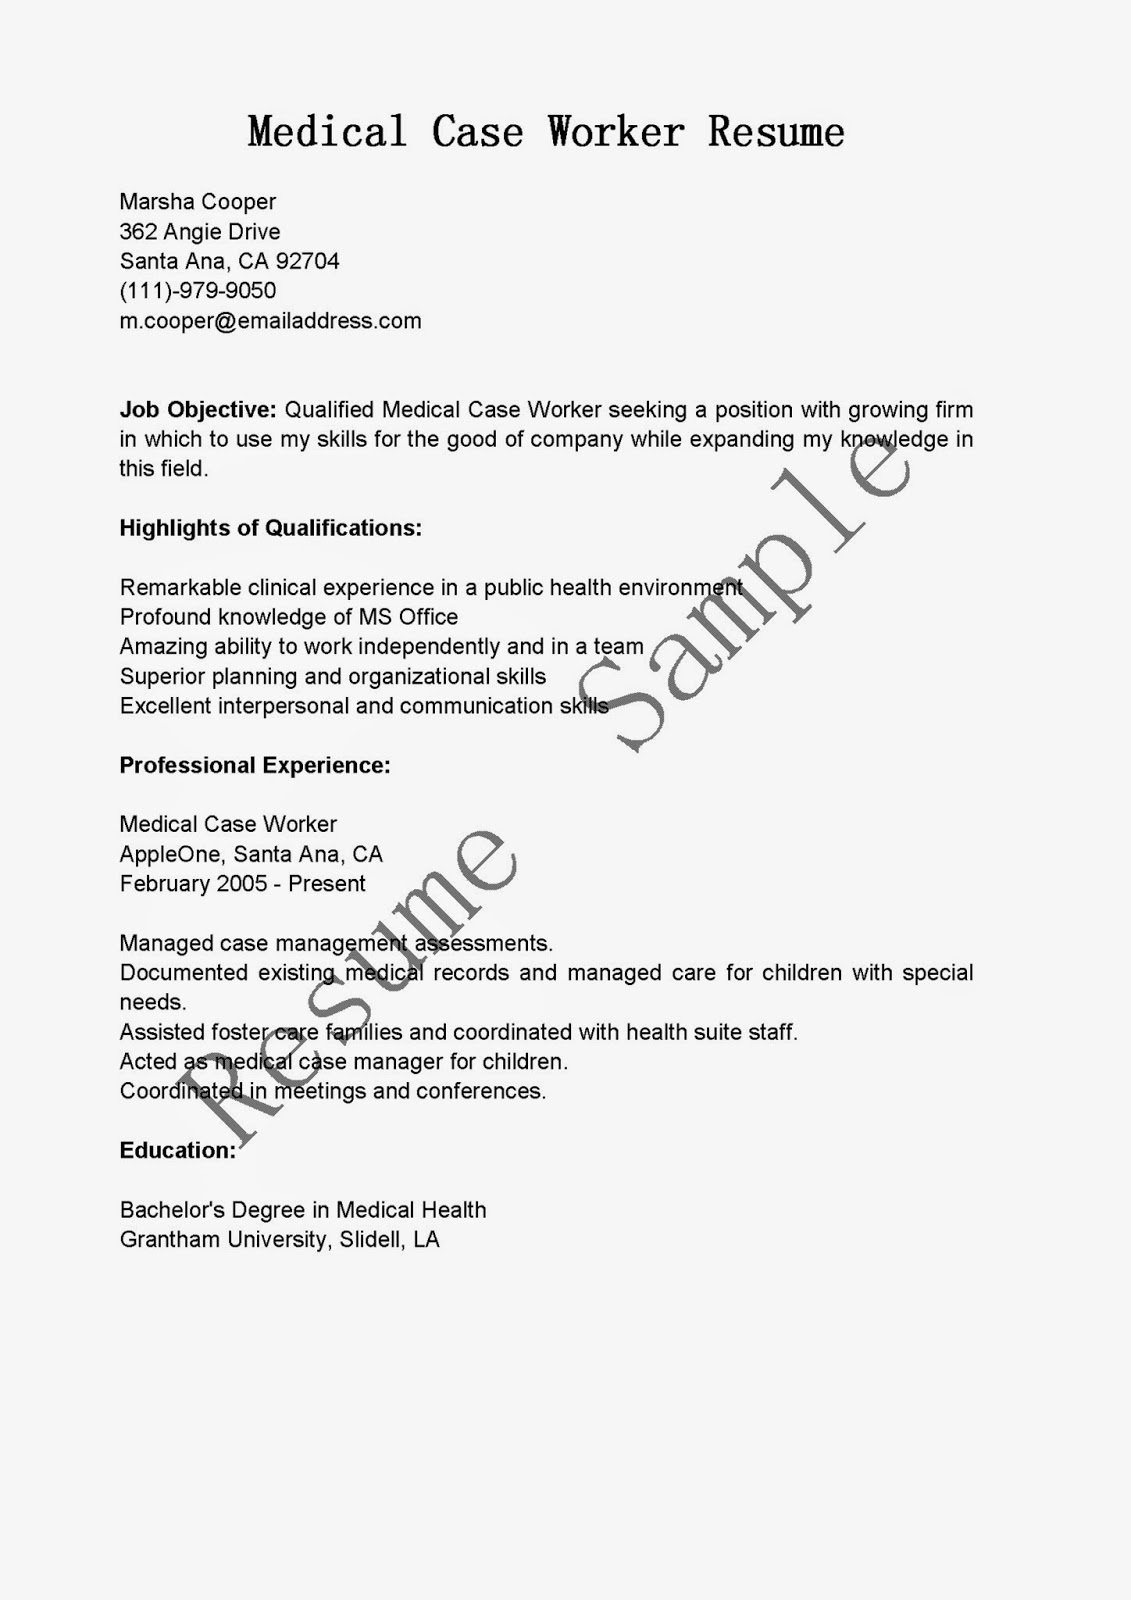 Medical Social Worker Resume Resume Samples Medical Case Worker Resume Sample